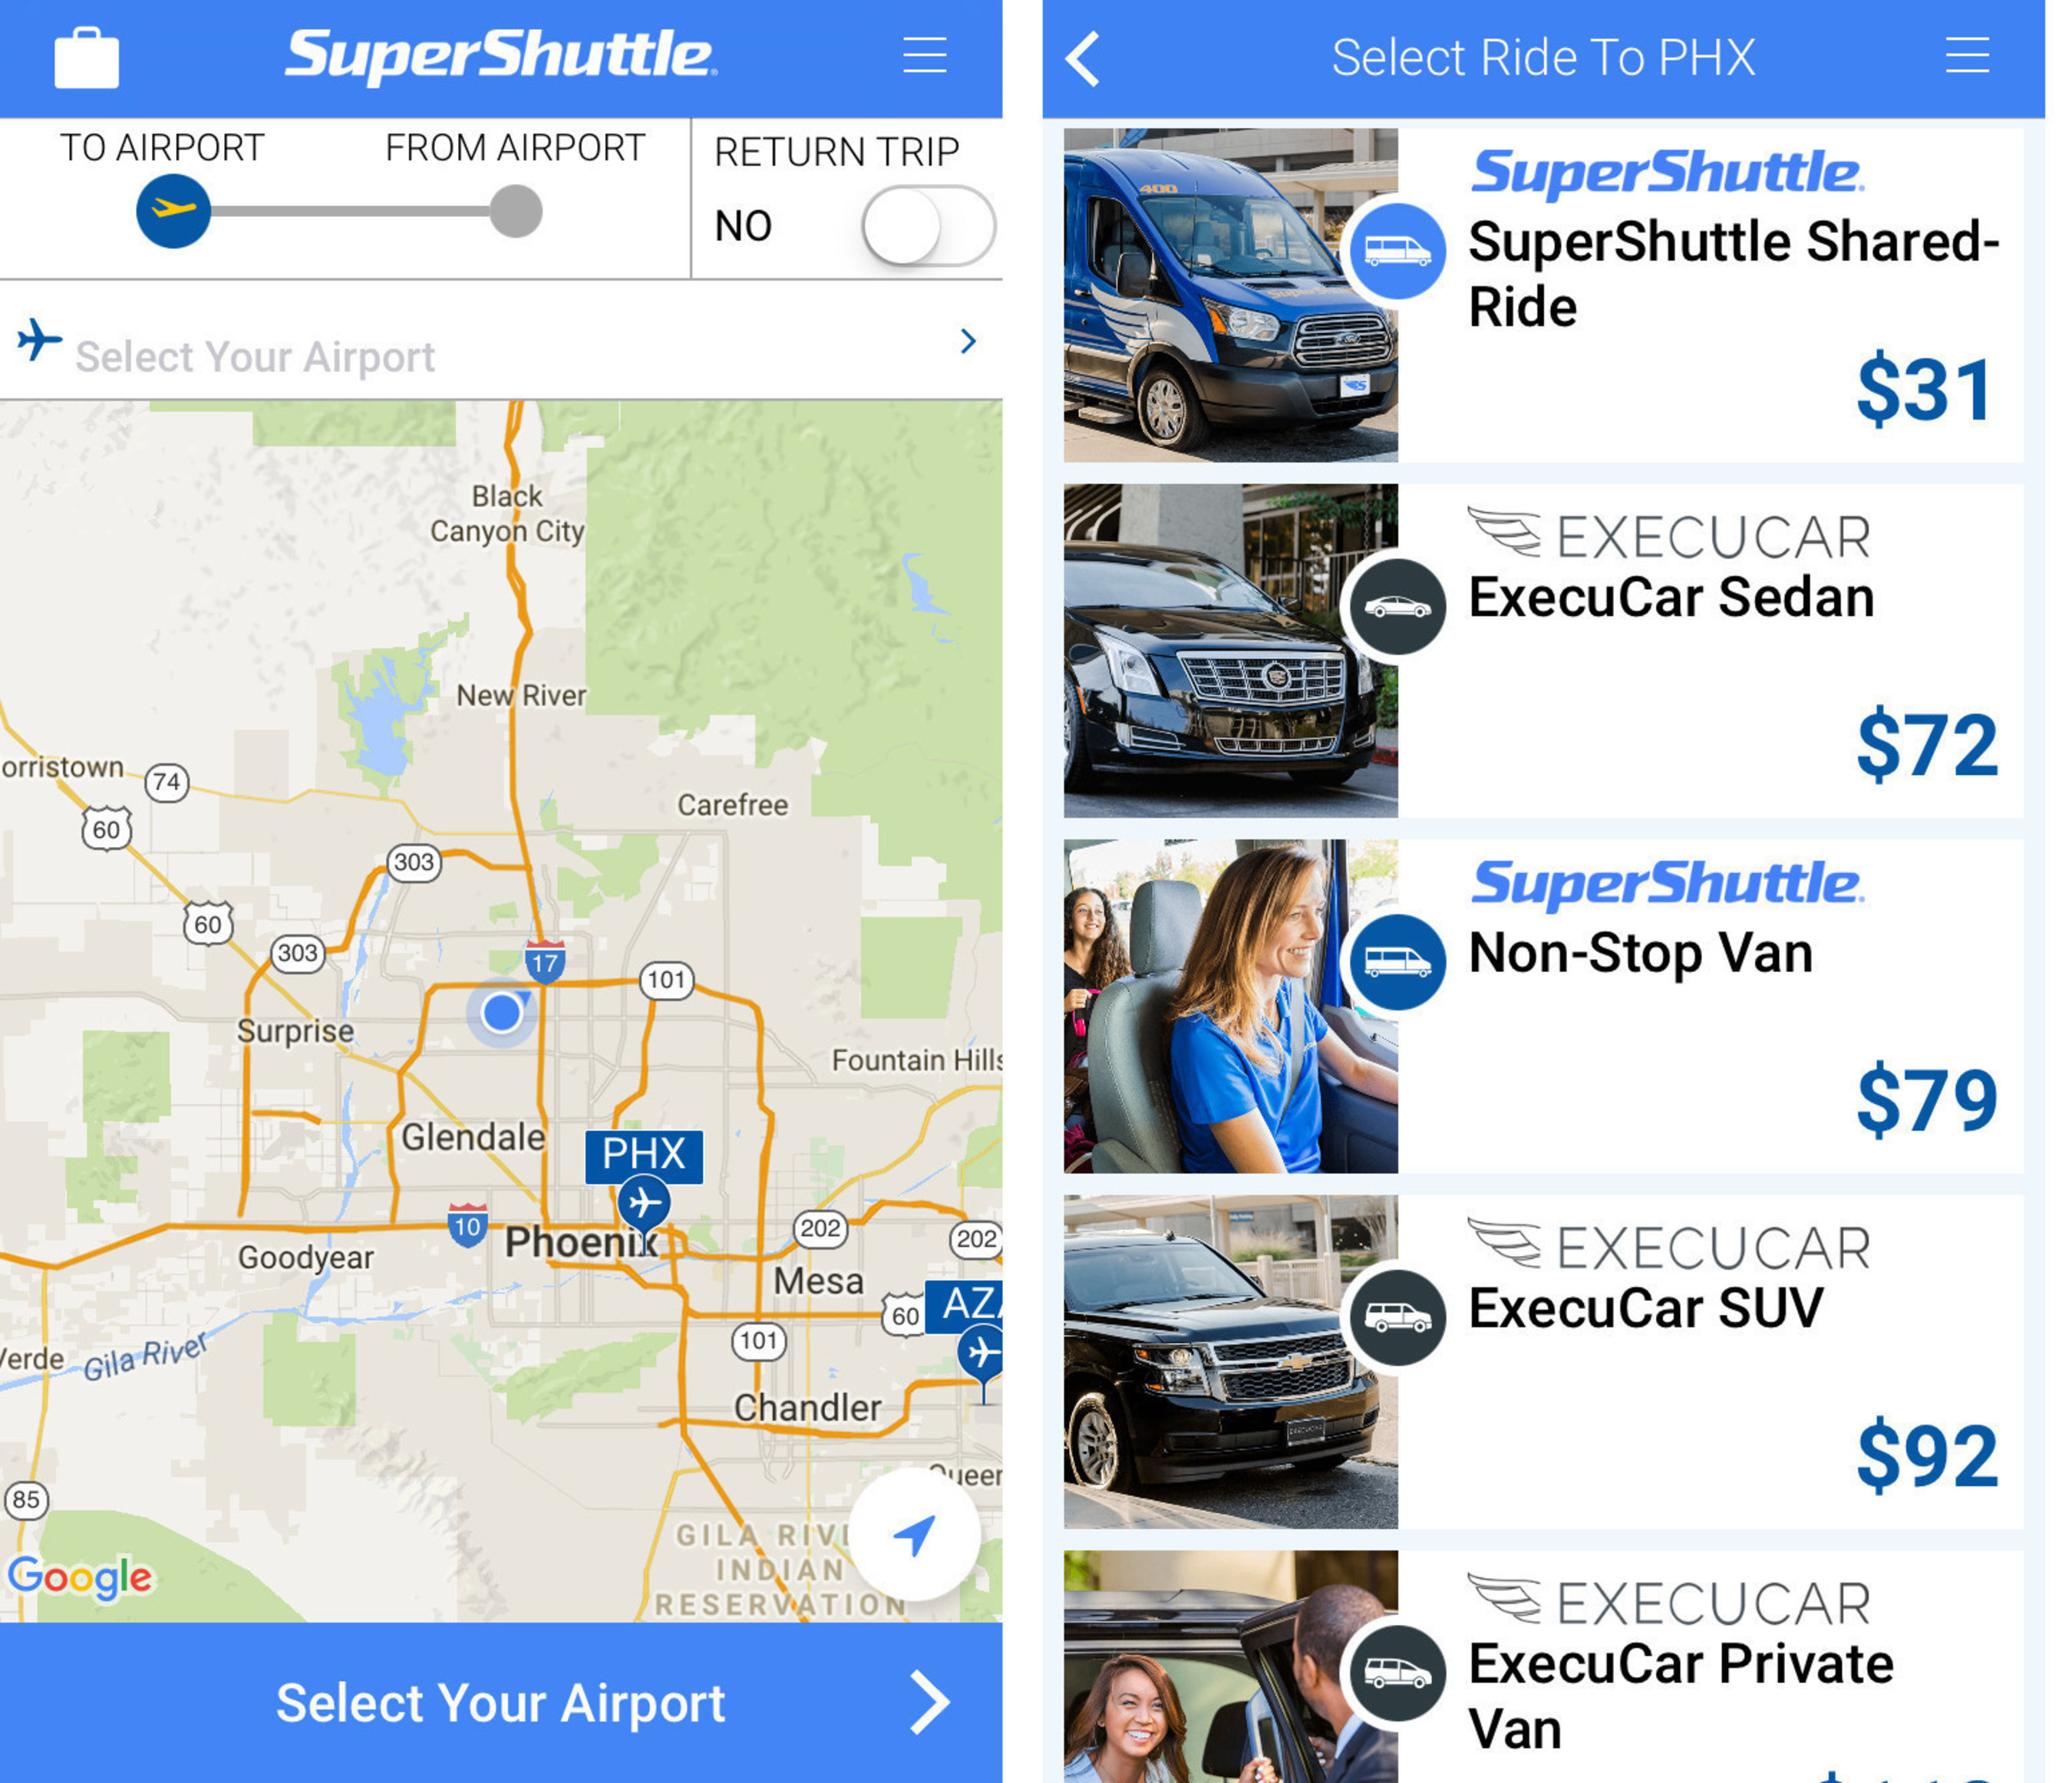 SuperShuttle app is easy to use and earns passengers double airline miles and points all Summer long. See the SuperShuttle Summer Sale for more information.